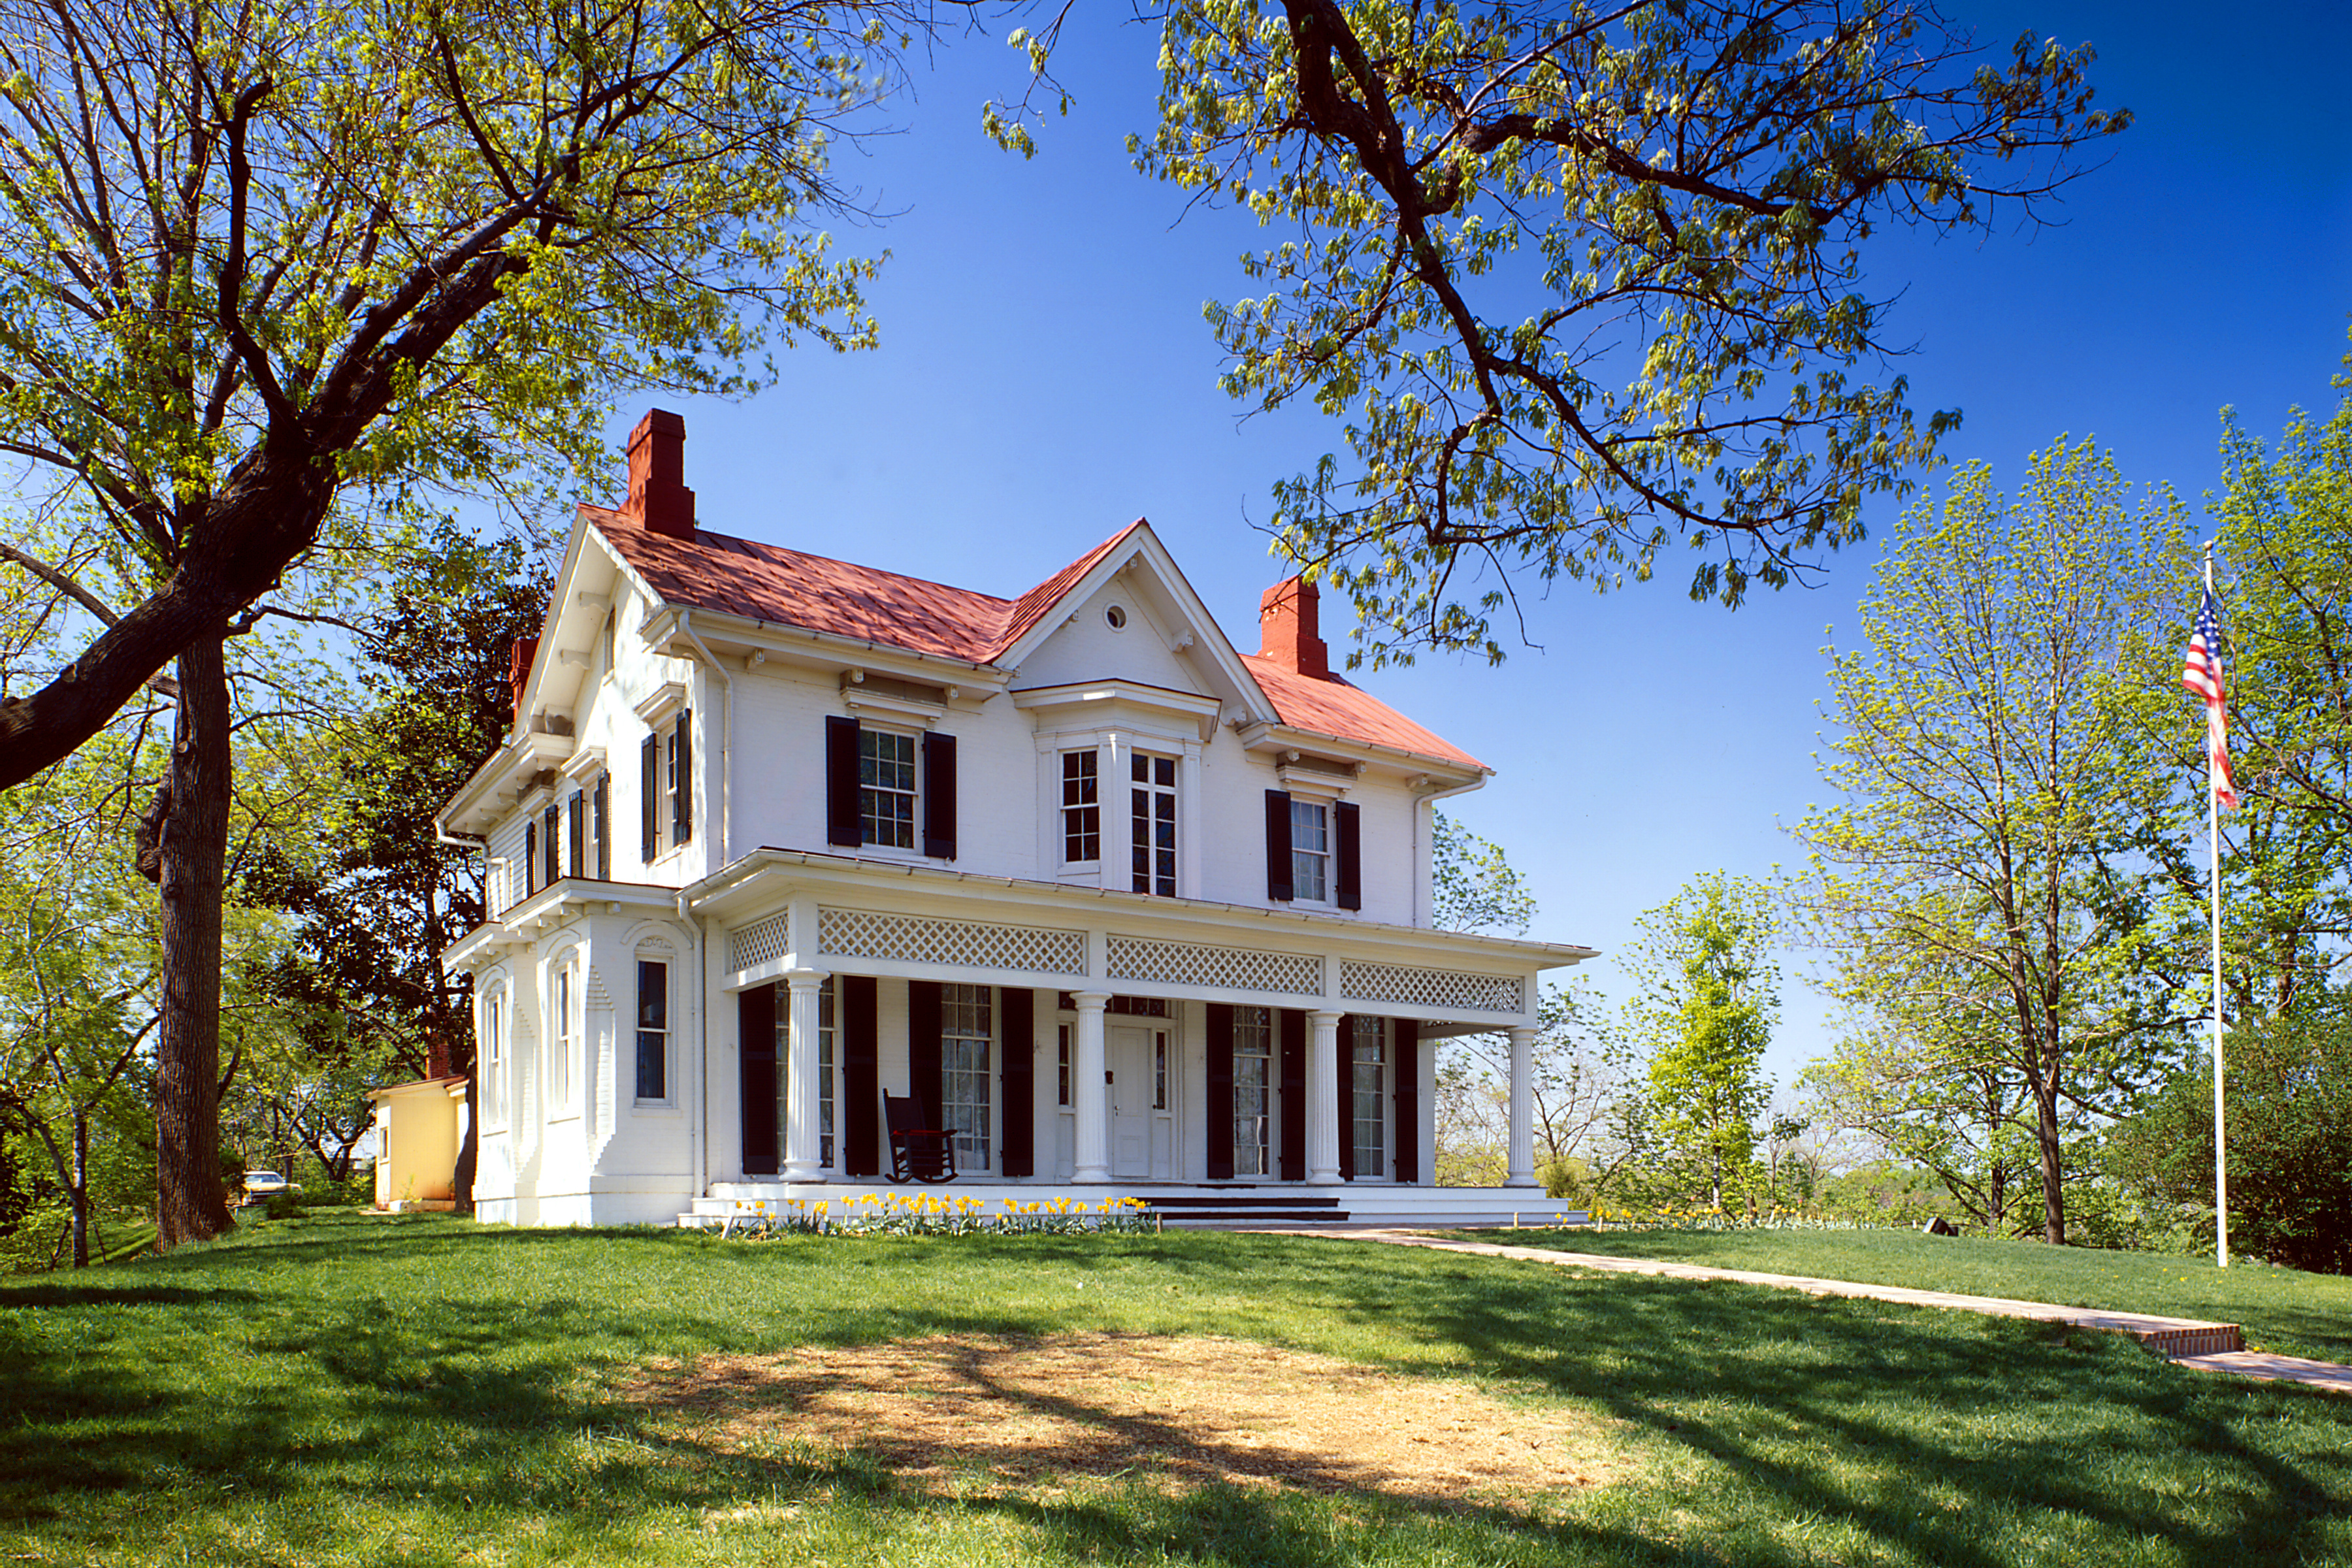 Originally bought by John Van Hook in 1855, Douglass named the home Cedar Hill and lived here from 1877 to his death in 1895.